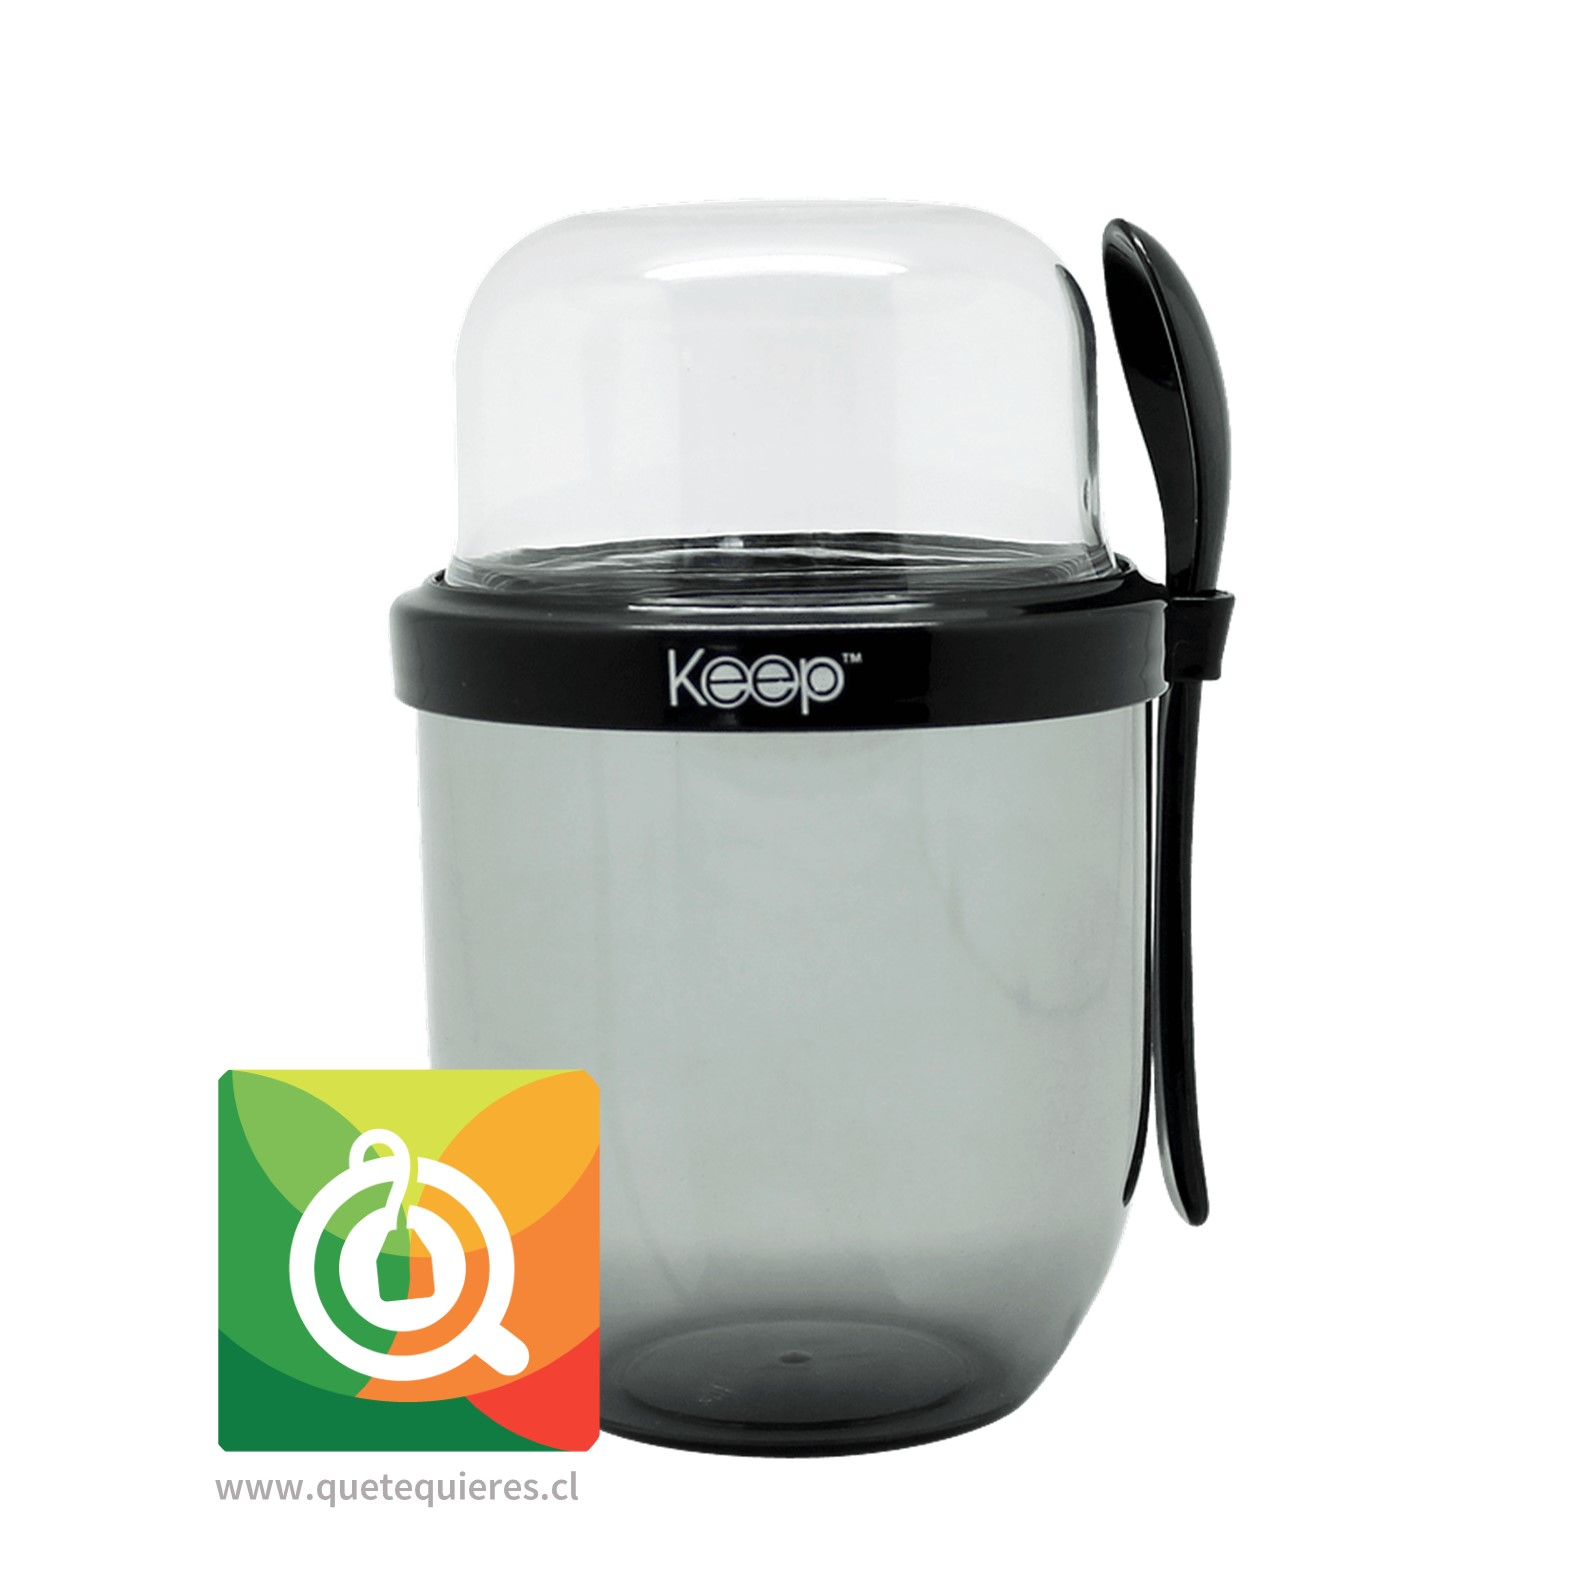 Keep Vaso Yogurt To Go II Negro